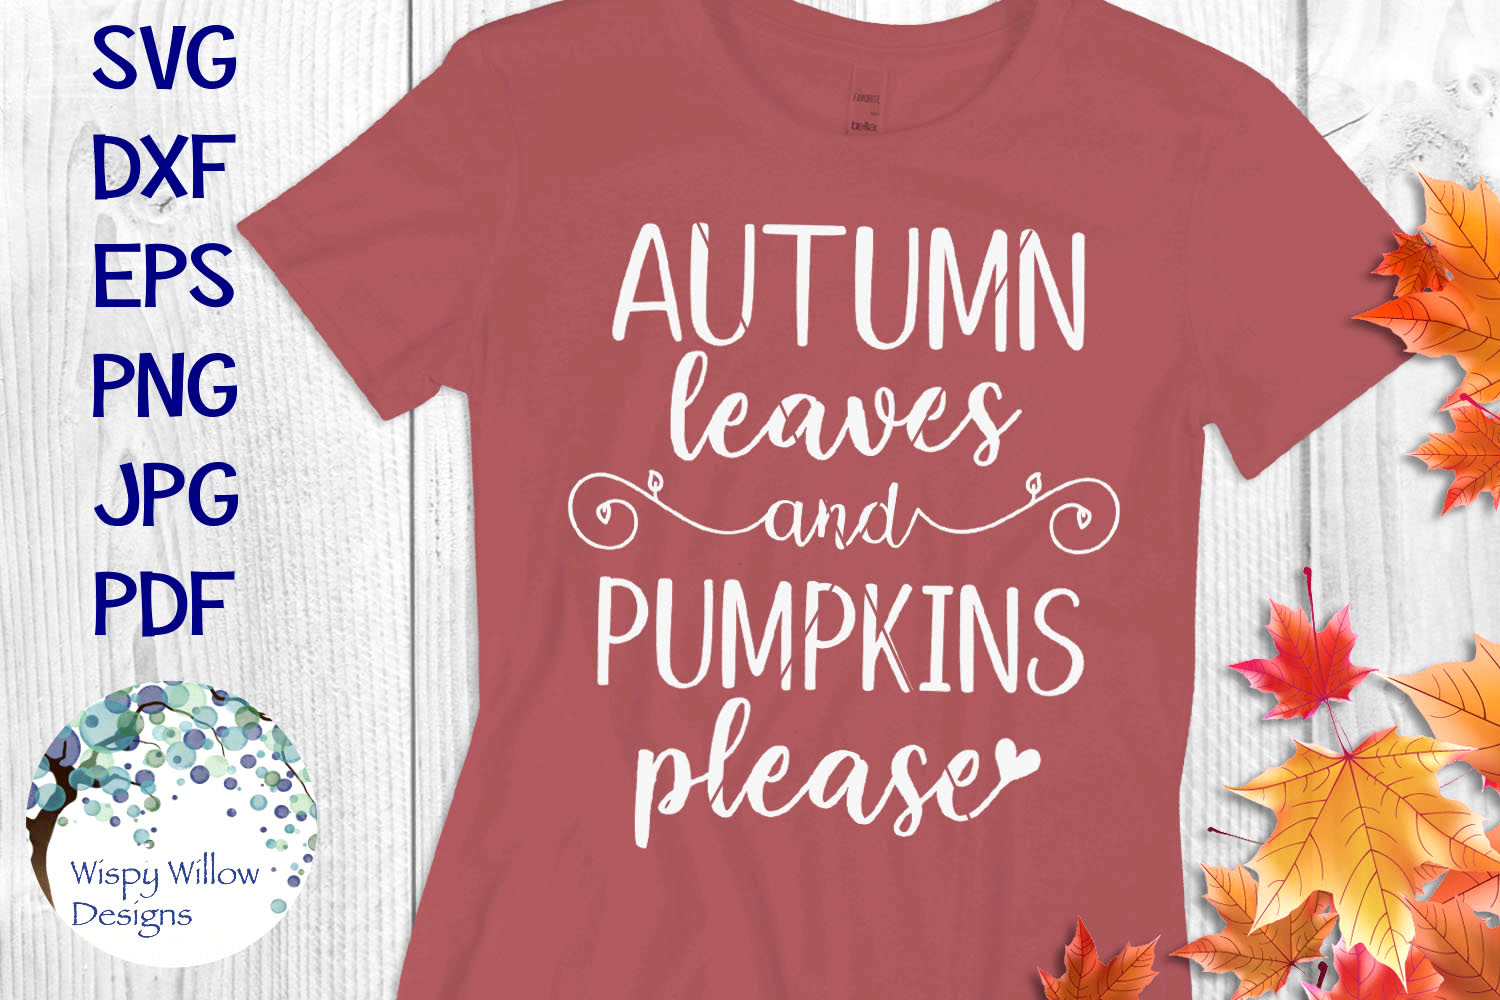 Autumn Leaves and Pumpkins Please | Fall Shirt SVG Cut File example image 1